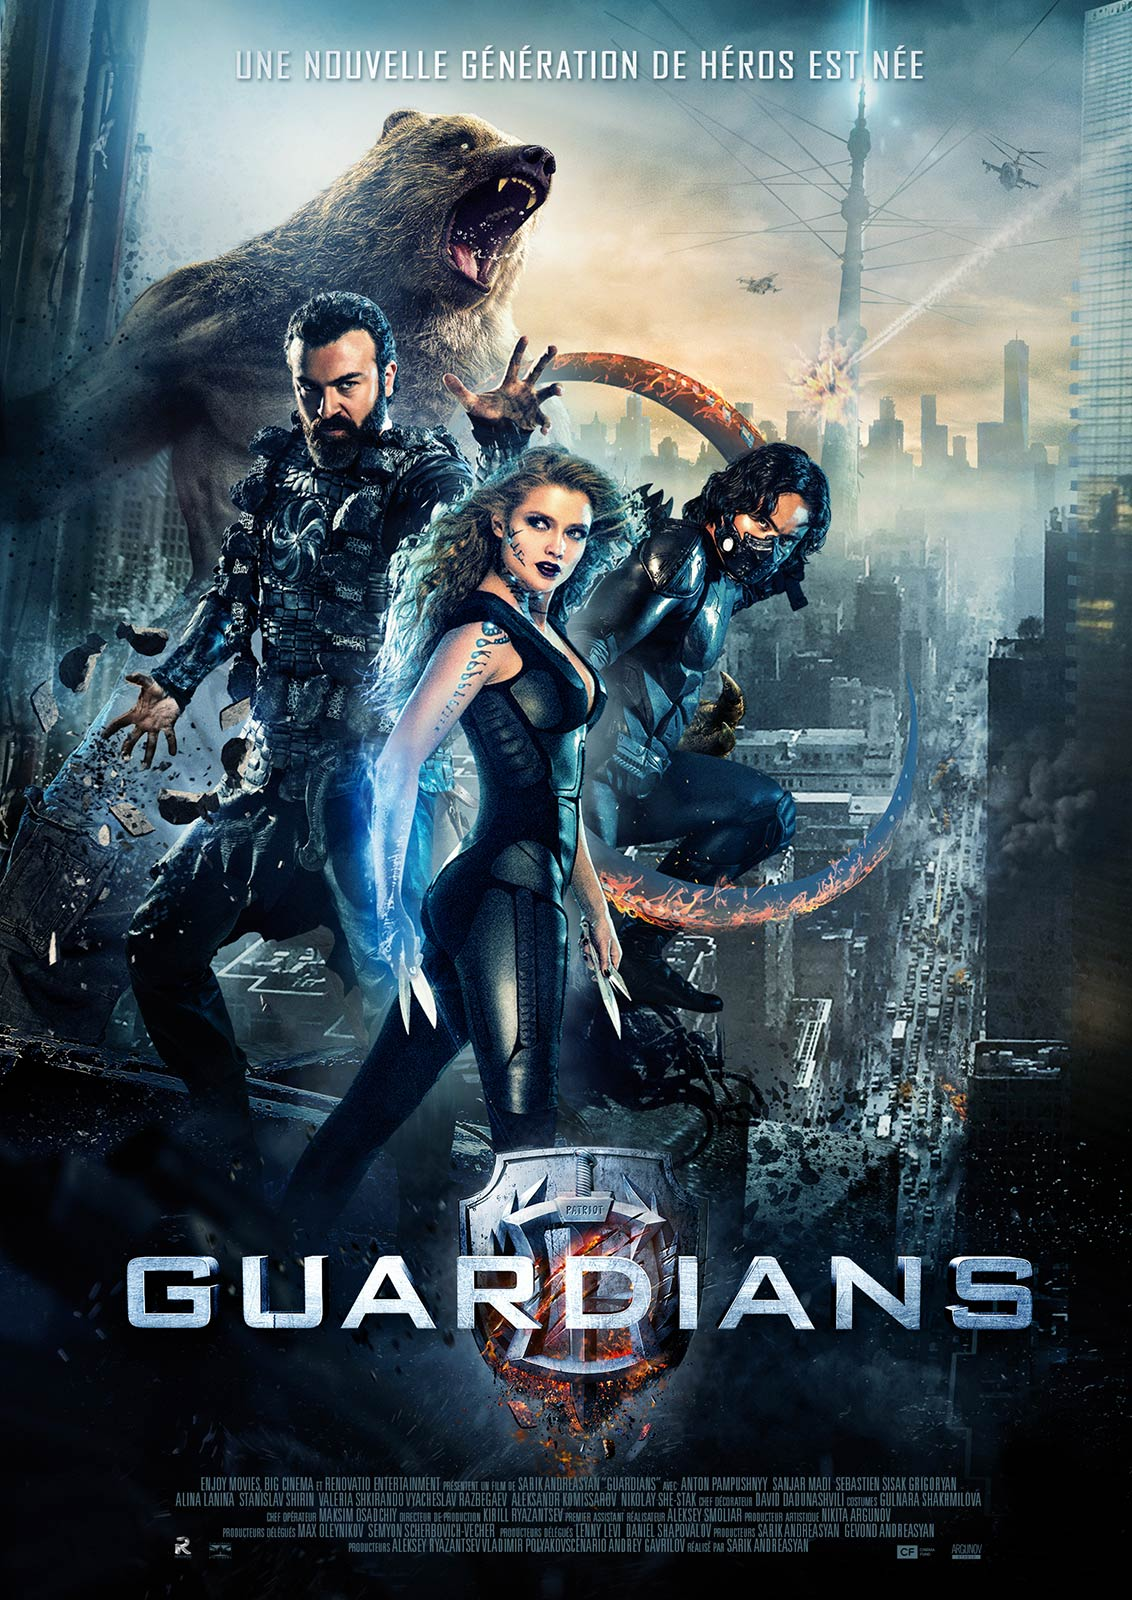 Guardians Streaming Bluray 1080p